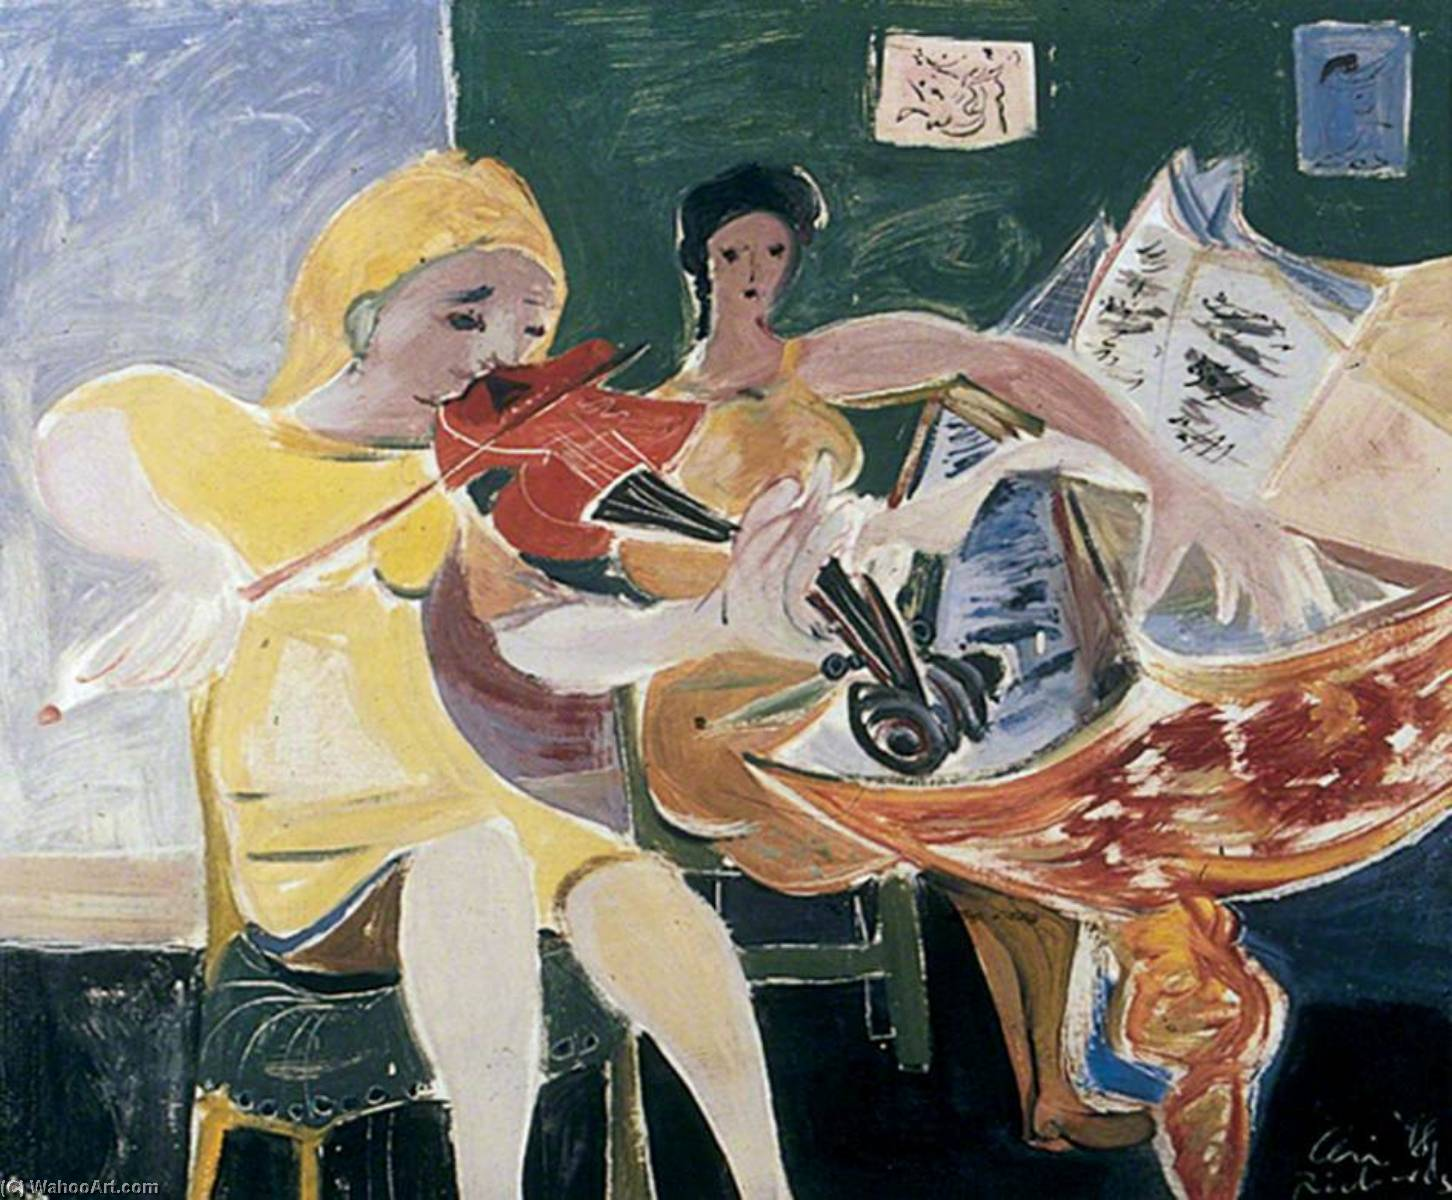 The Violinist, Oil On Canvas by Ceri Giraldus Richards (1903-1971, United States)